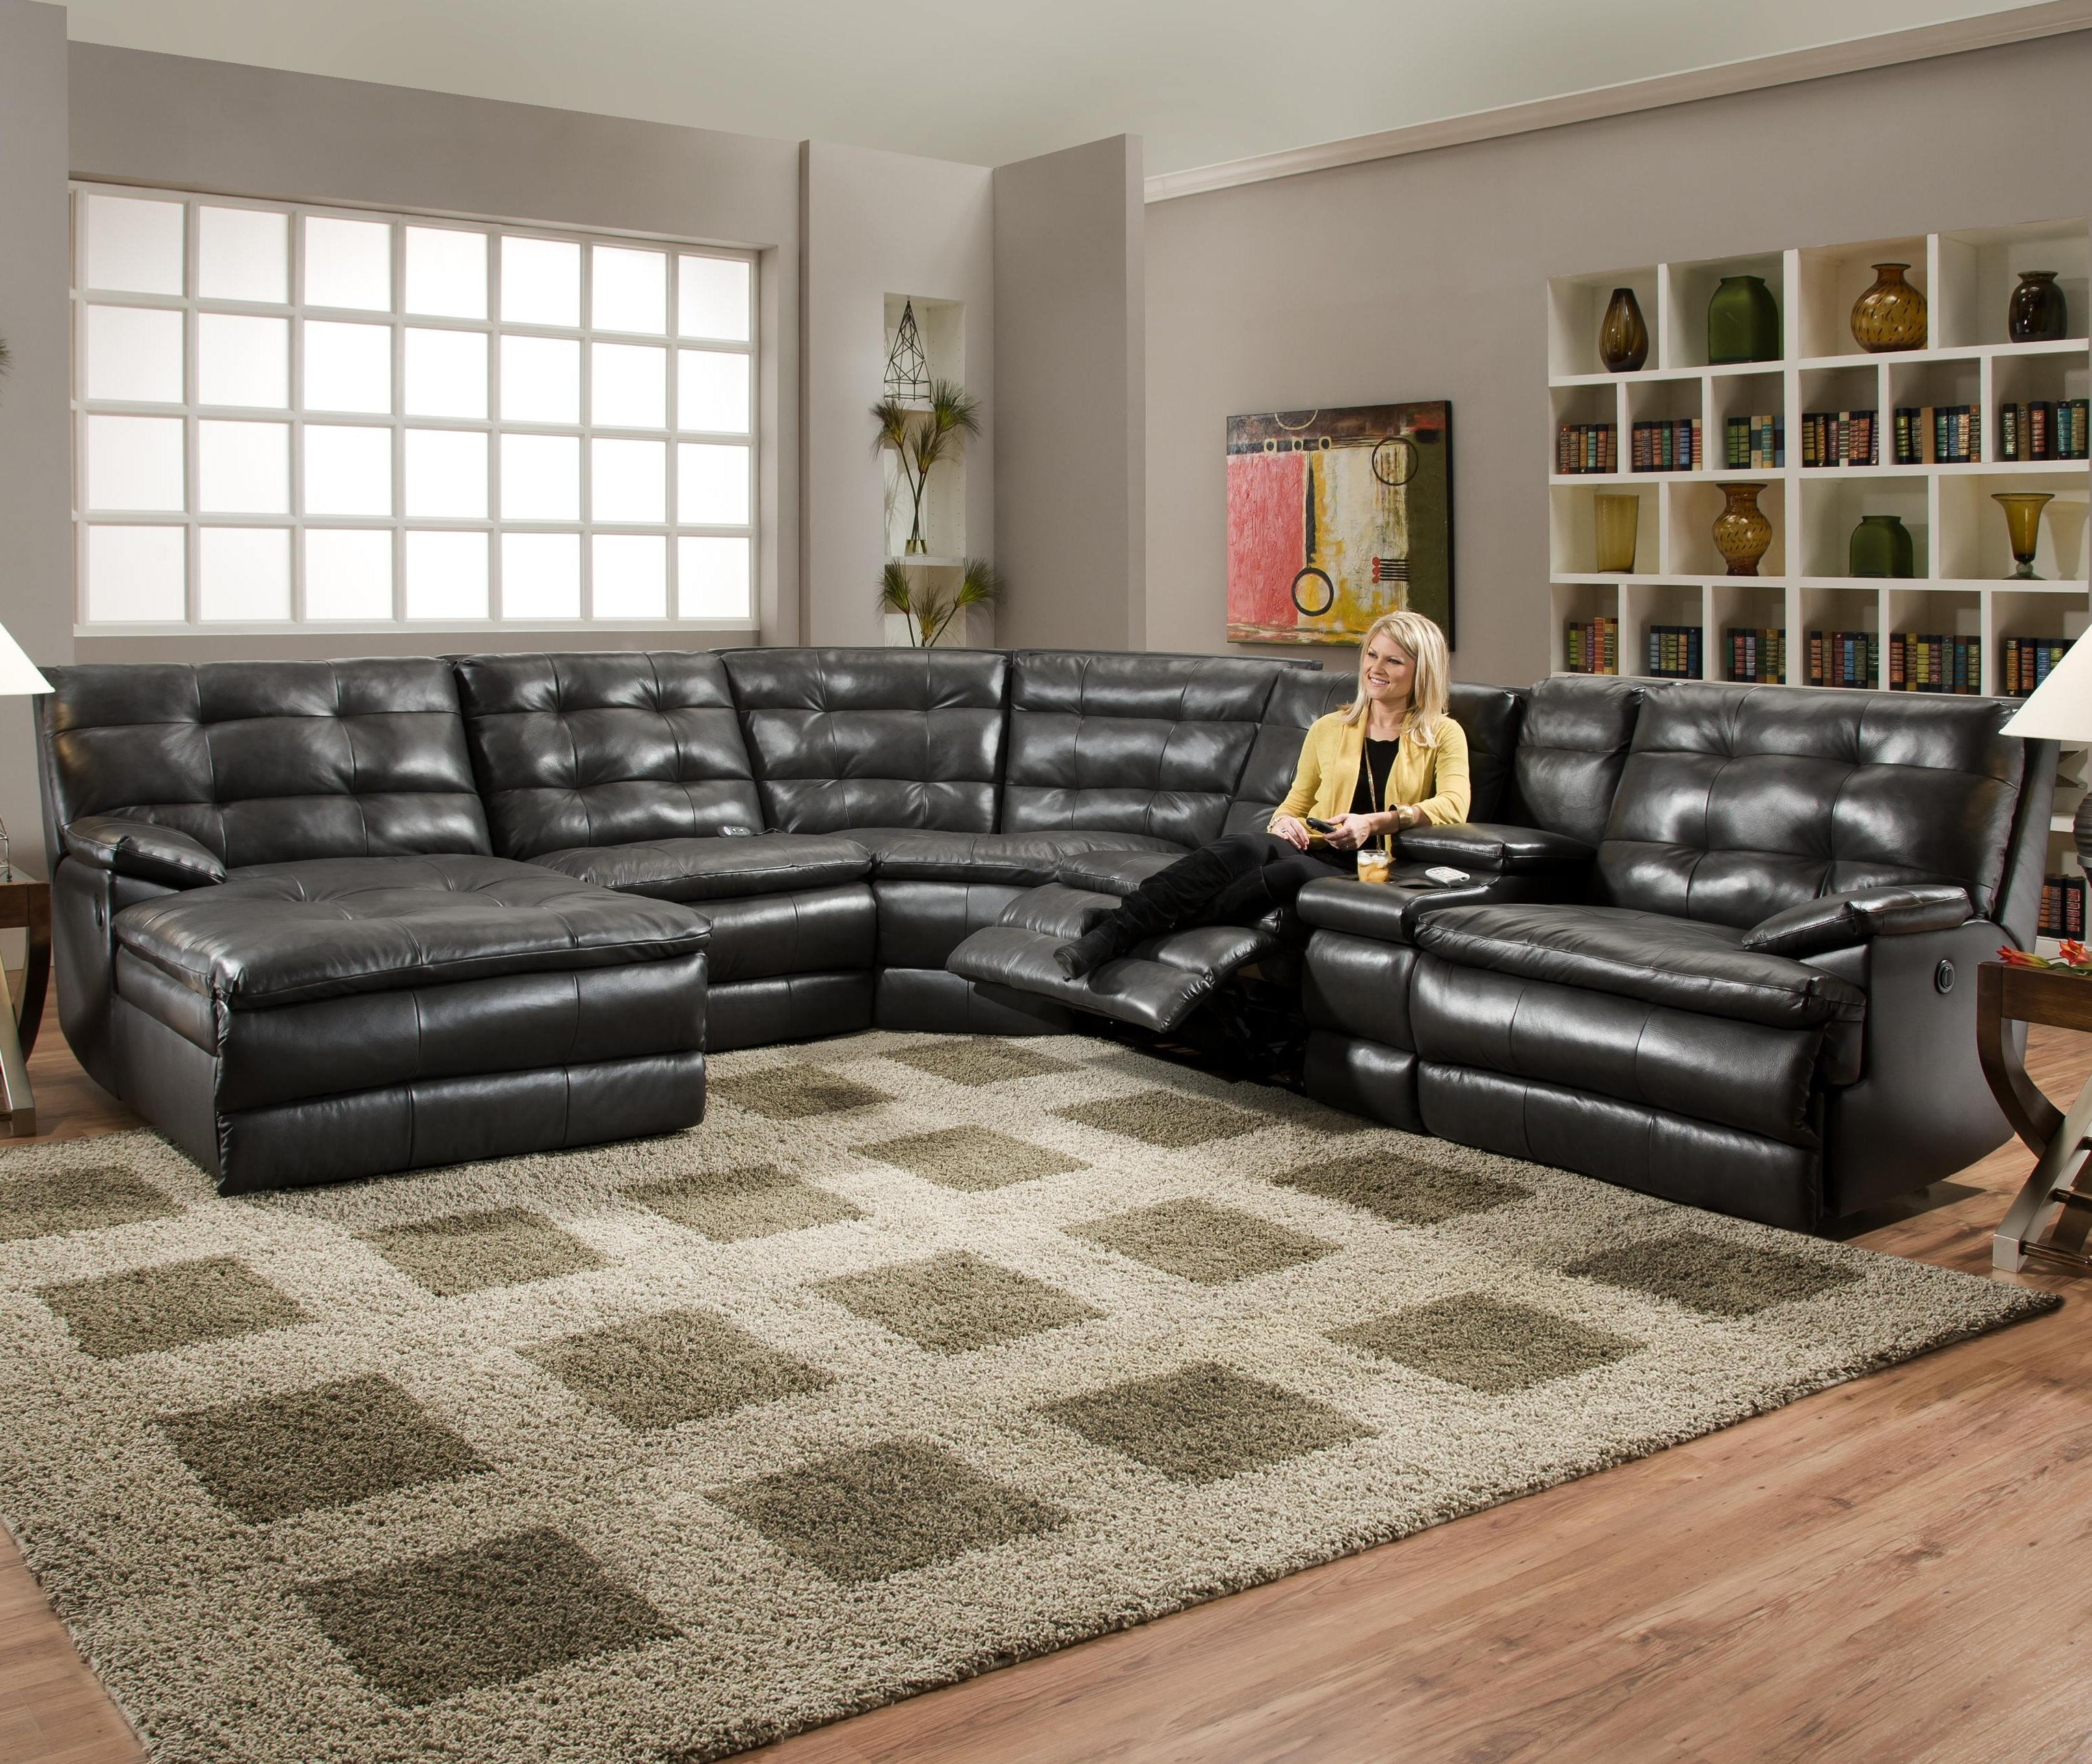 Most Comfortable Sofa Reviews Oversized Deep Couch U Shaped Sofa Throughout Well Known Deep U Shaped Sectionals (View 17 of 20)